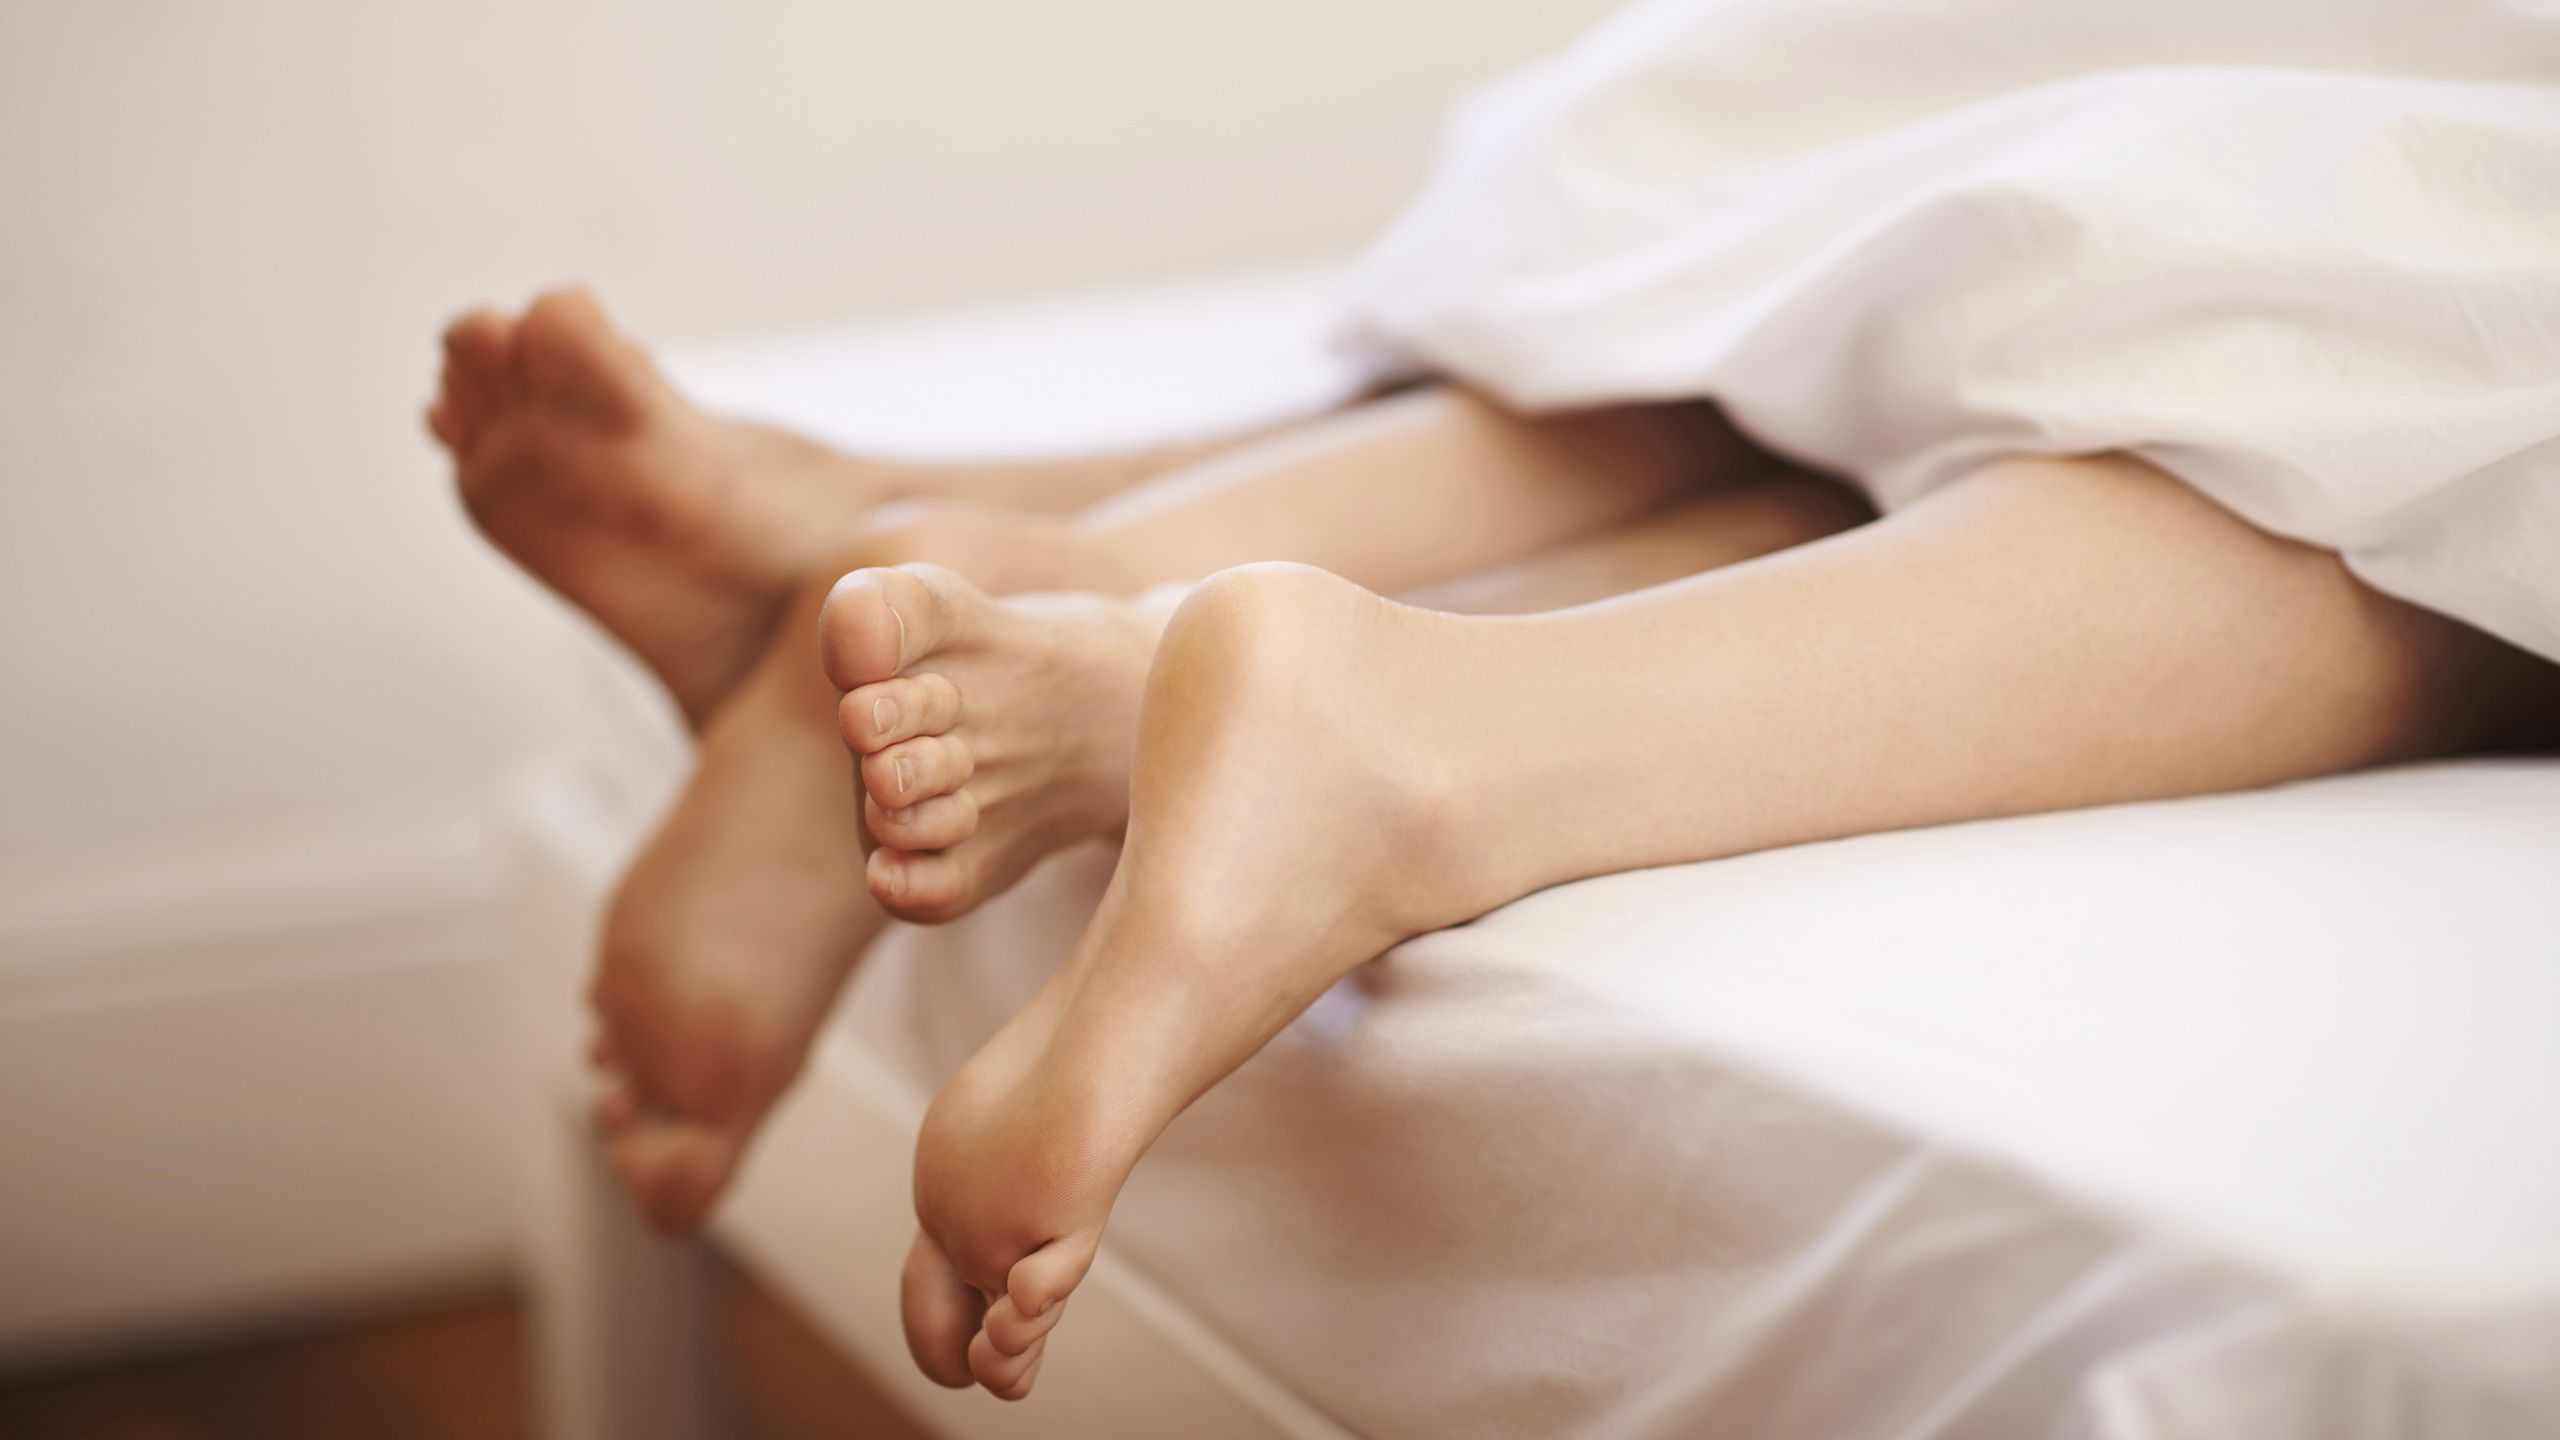 My Legs Shake After Sex—Is That Normal?